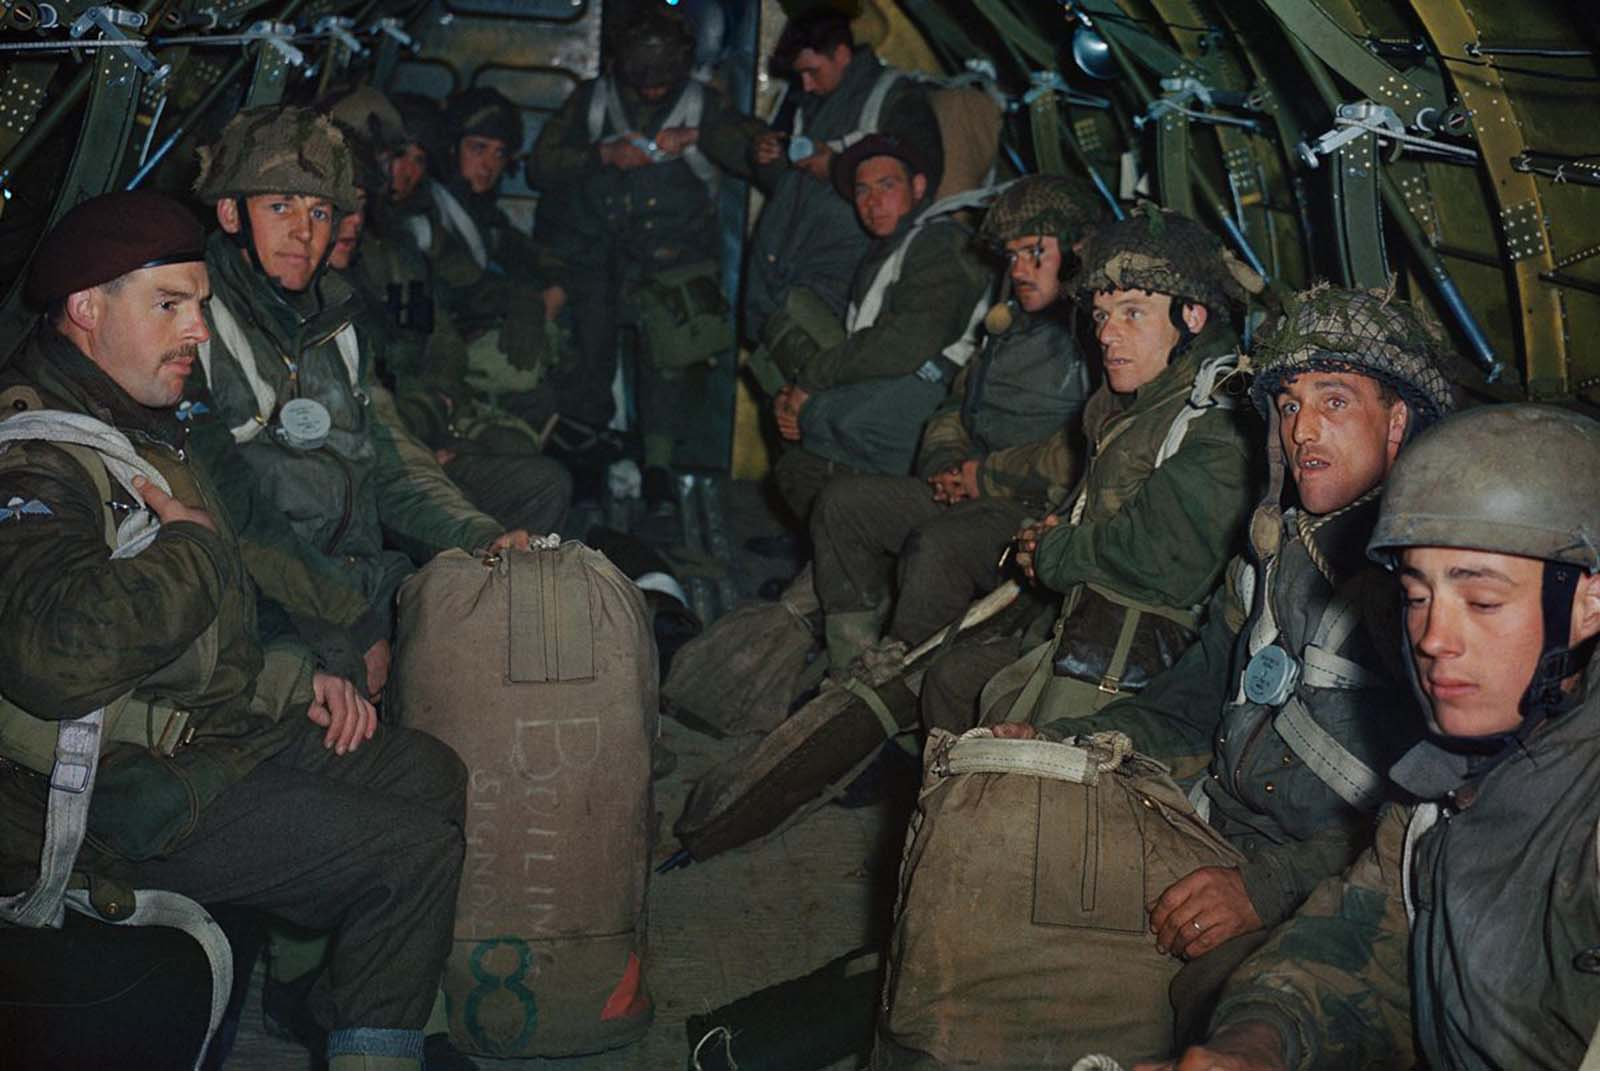 British paratroopers prepare for a practice jump from an RAF Dakota based at Down Ampney in Wiltshire. 1944.